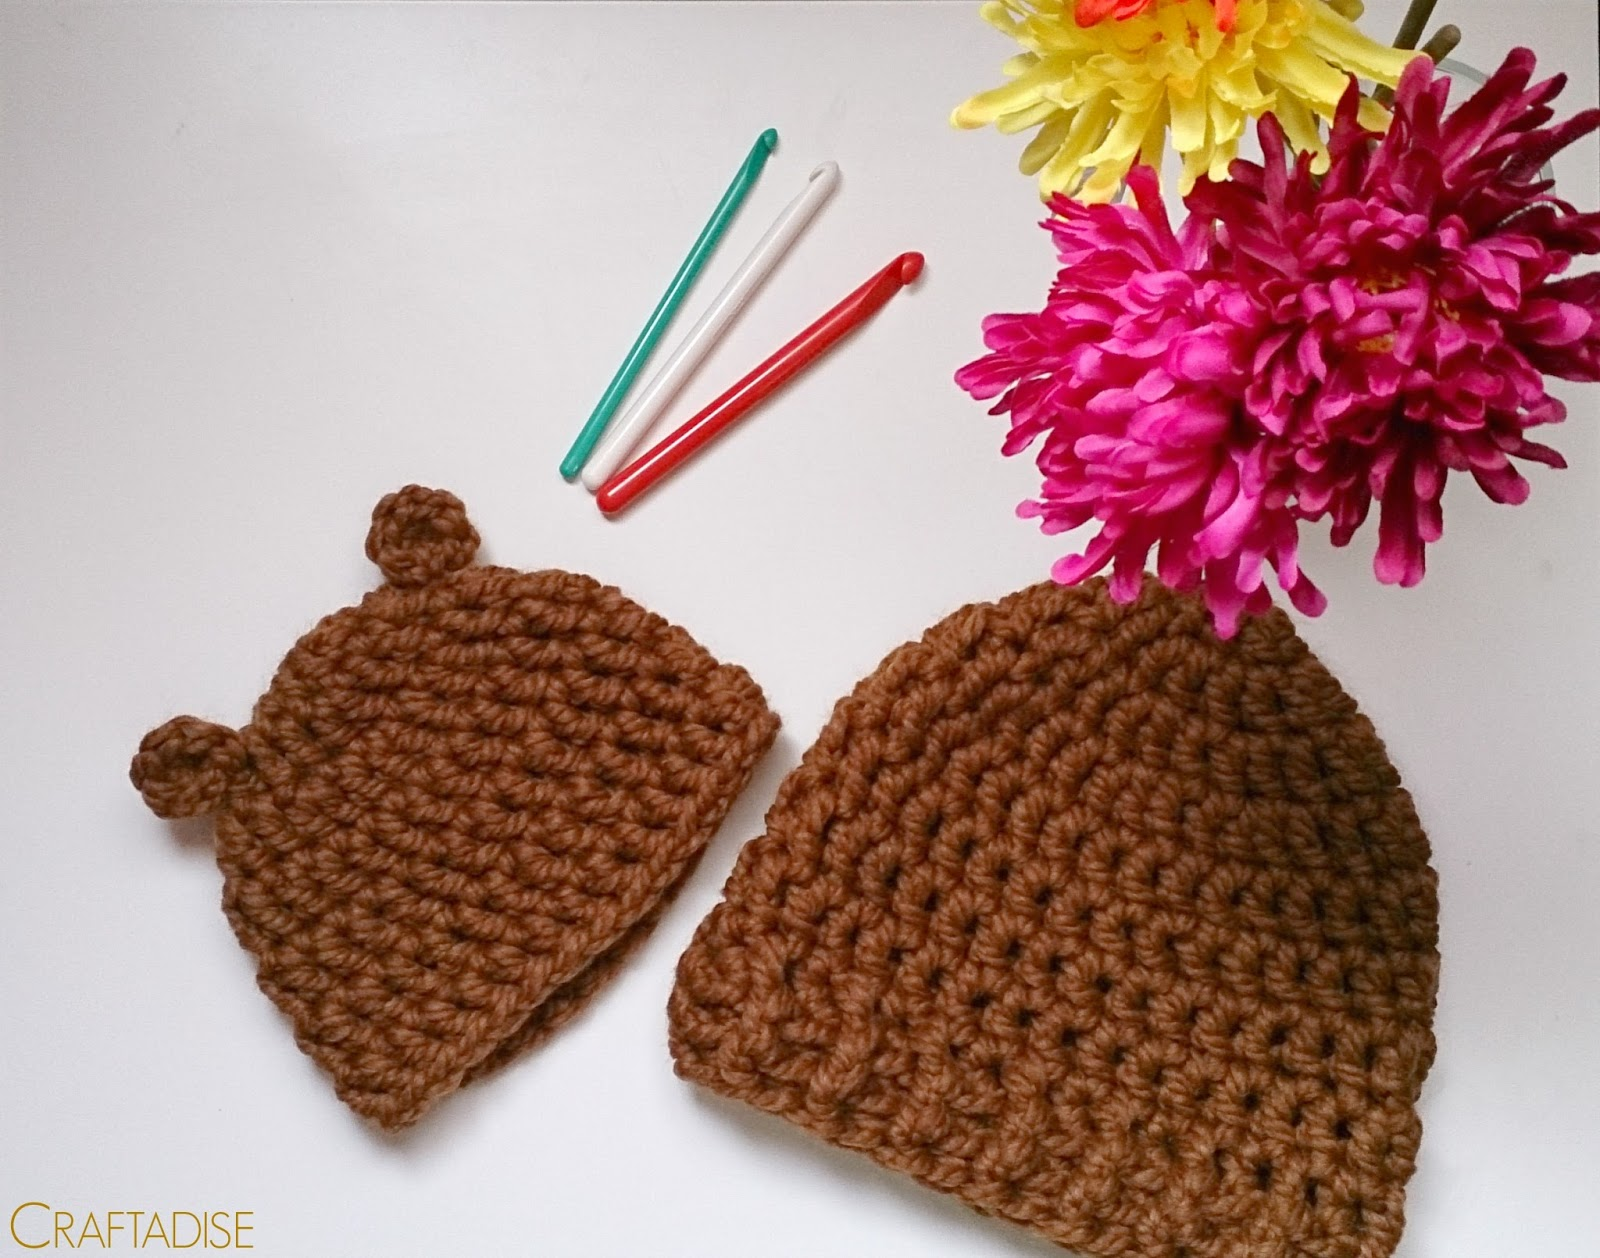 Crochet baby bear hat + woman man hat